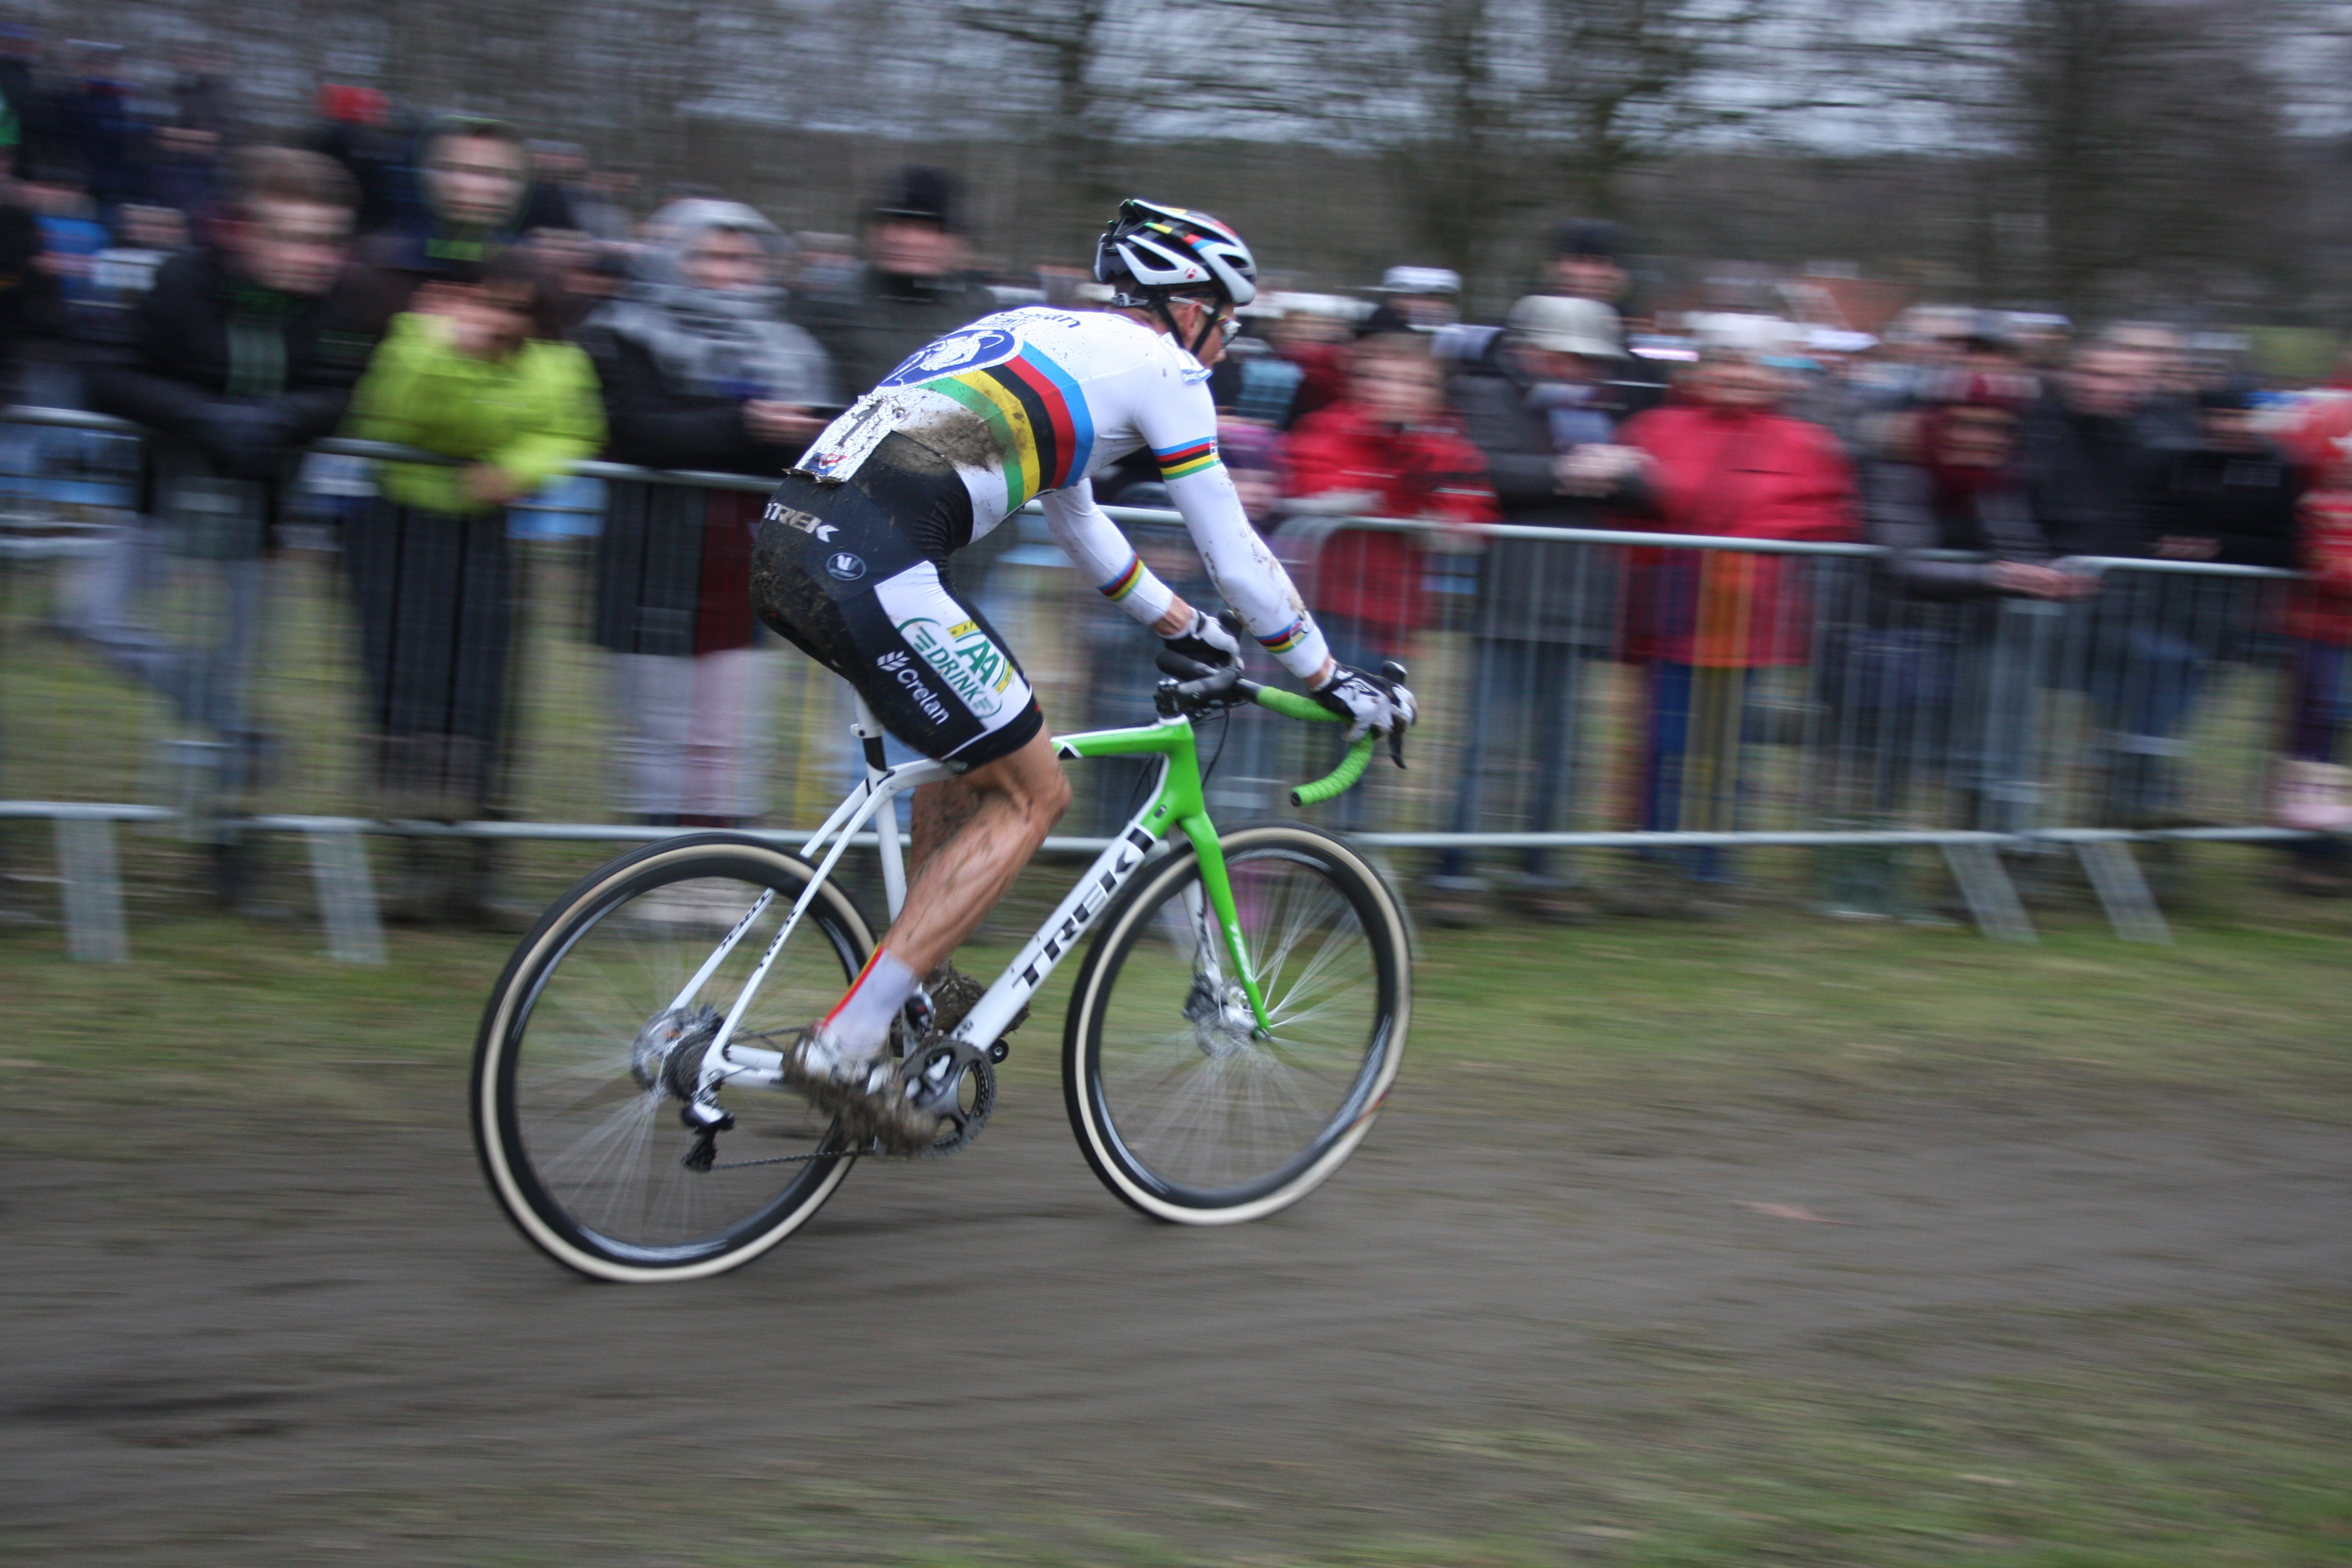 Sven Nys as Champion